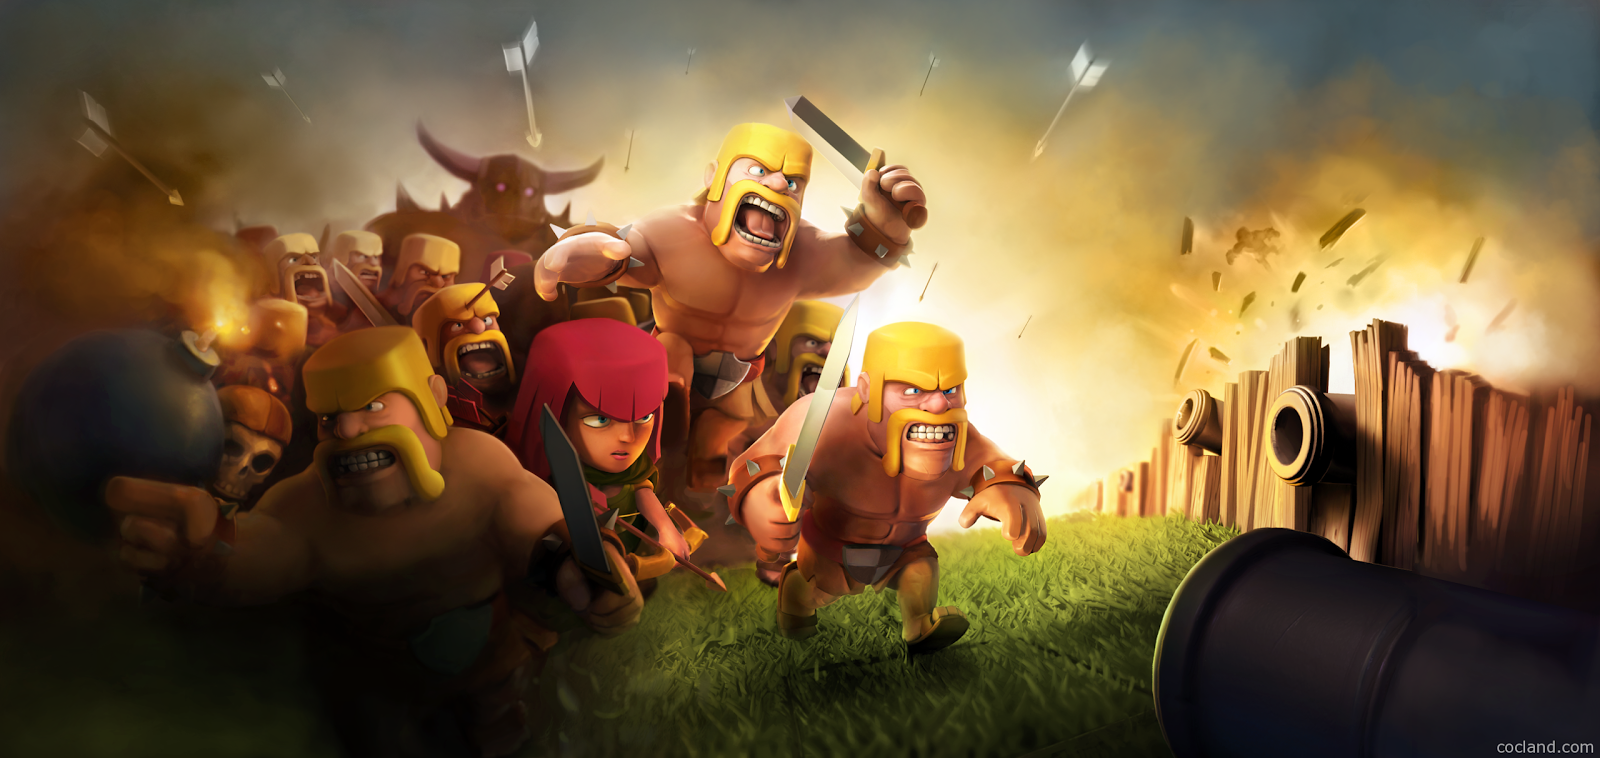 coc apk for android 4.0.4